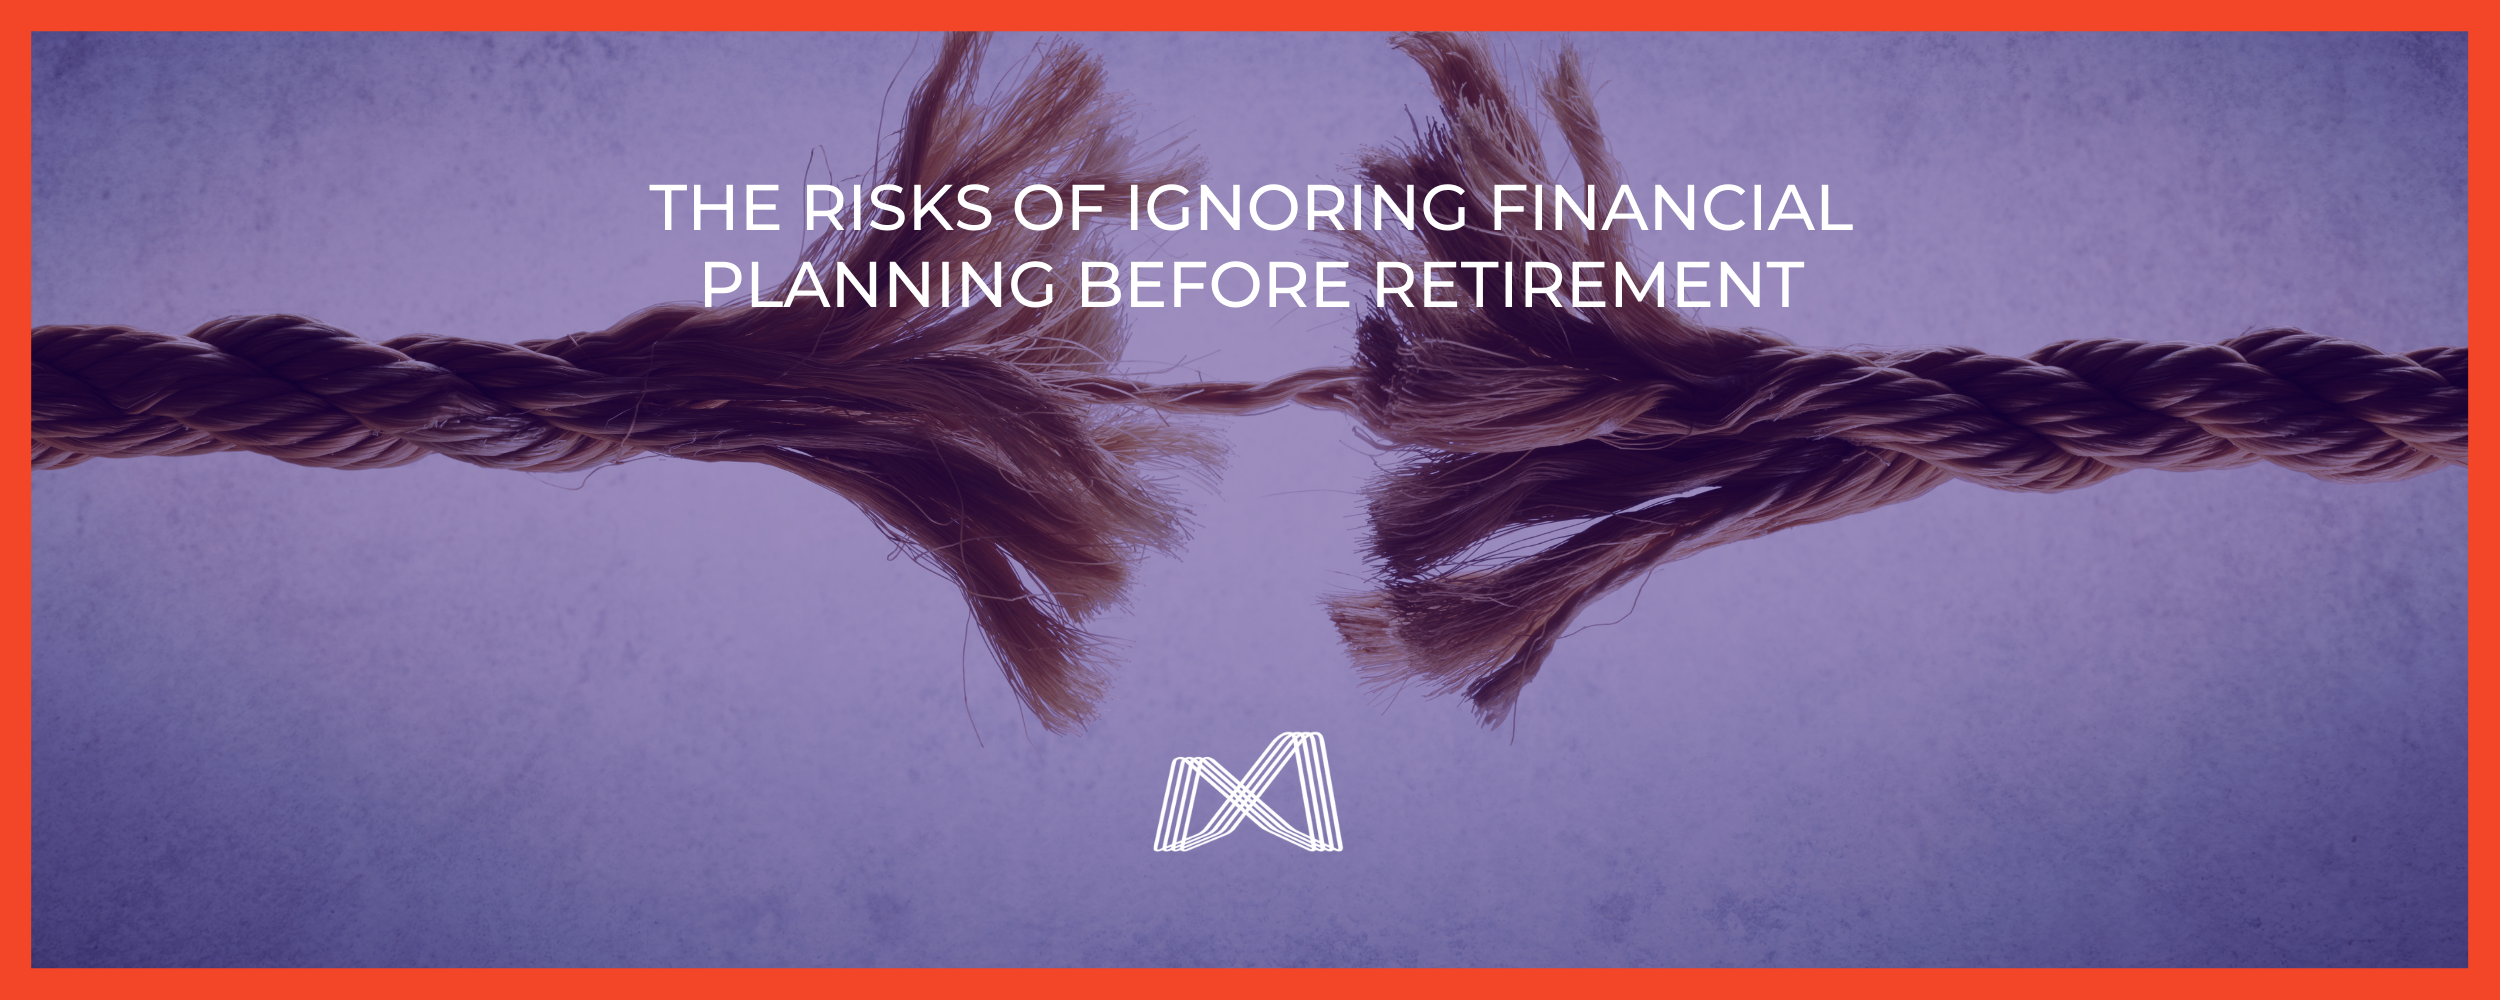 PWM- FINANCIAL PLANNING BEFORE RETIREMENT